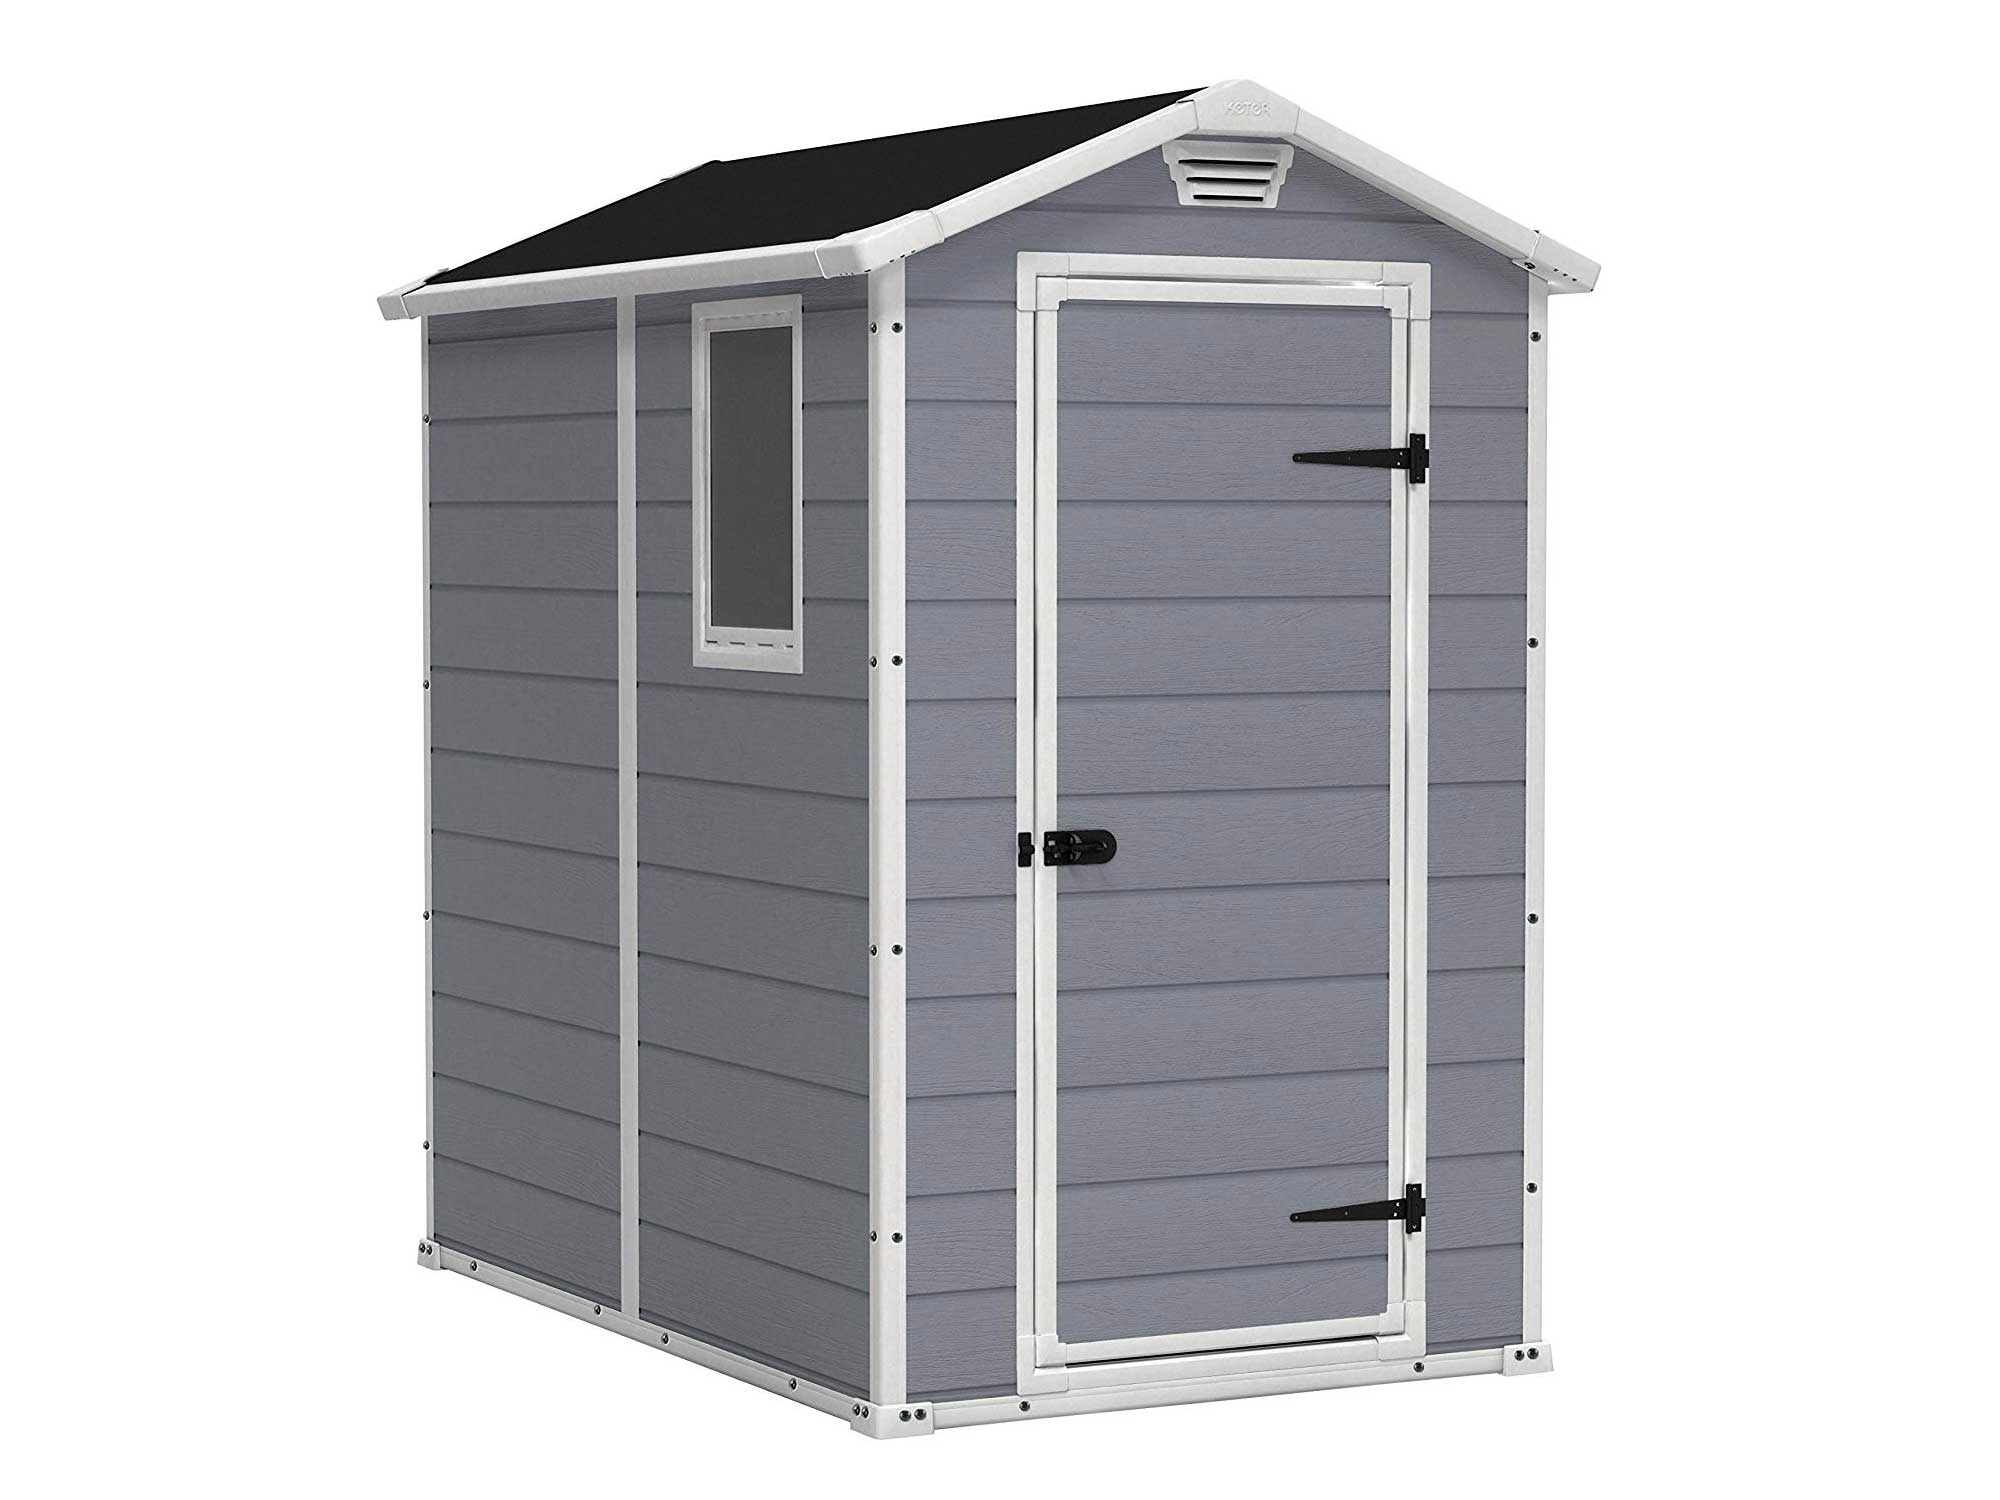 Keter Manor gray outdoor shed